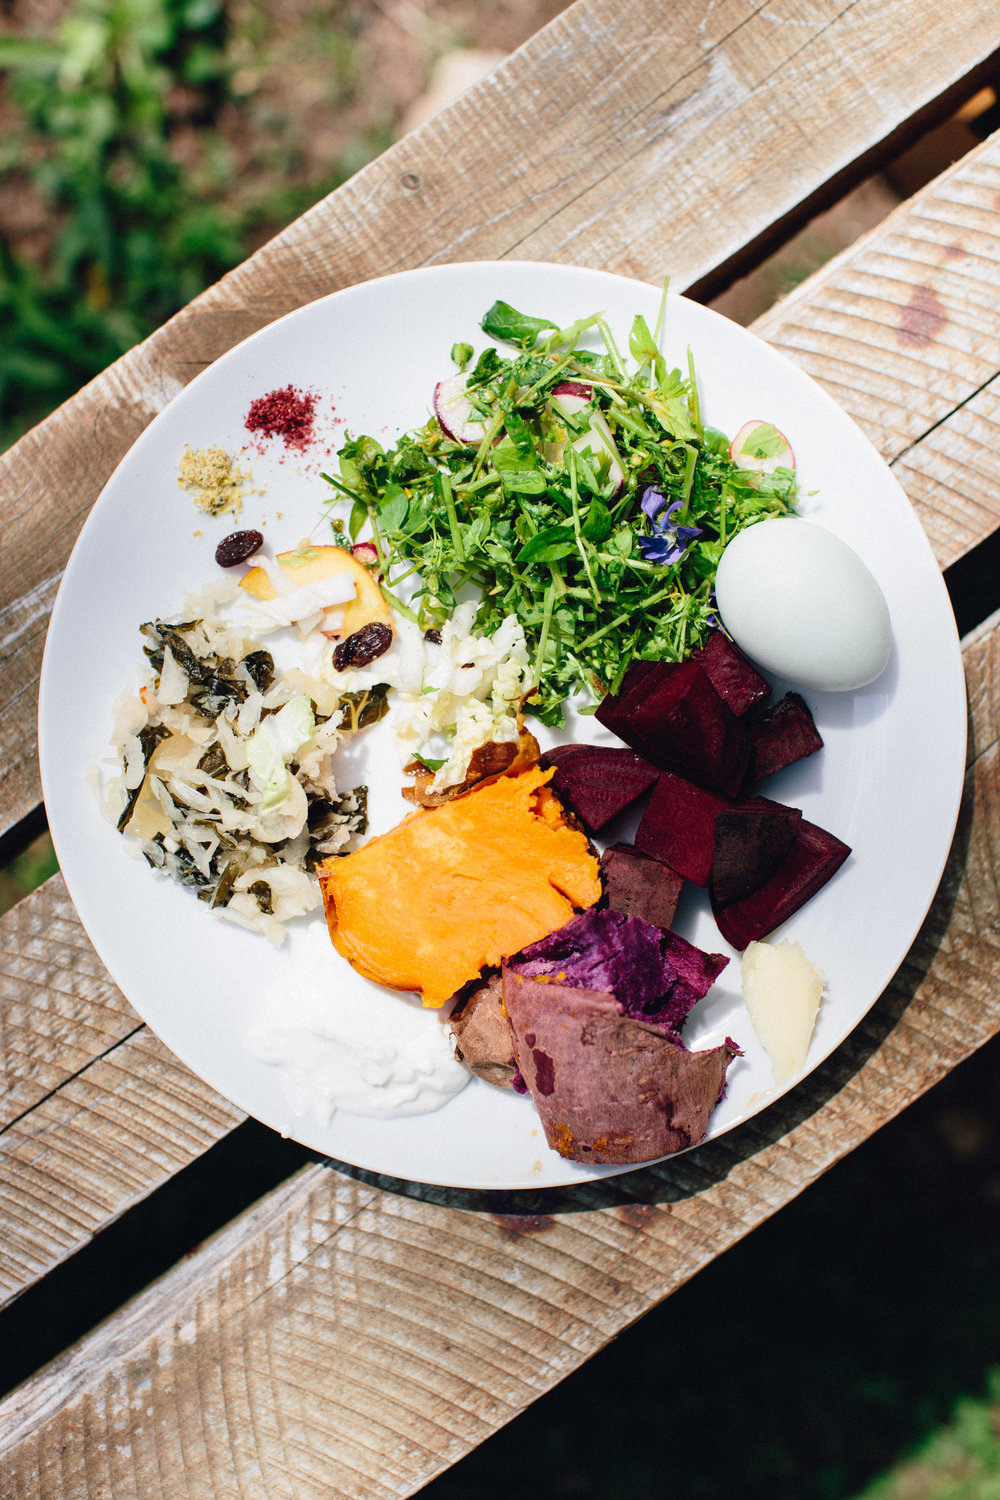 Very similar in how I compose my meals... meals here were like a little sampler of fresh, healthy, simple ingredients - accompanied by at least one fermented element!